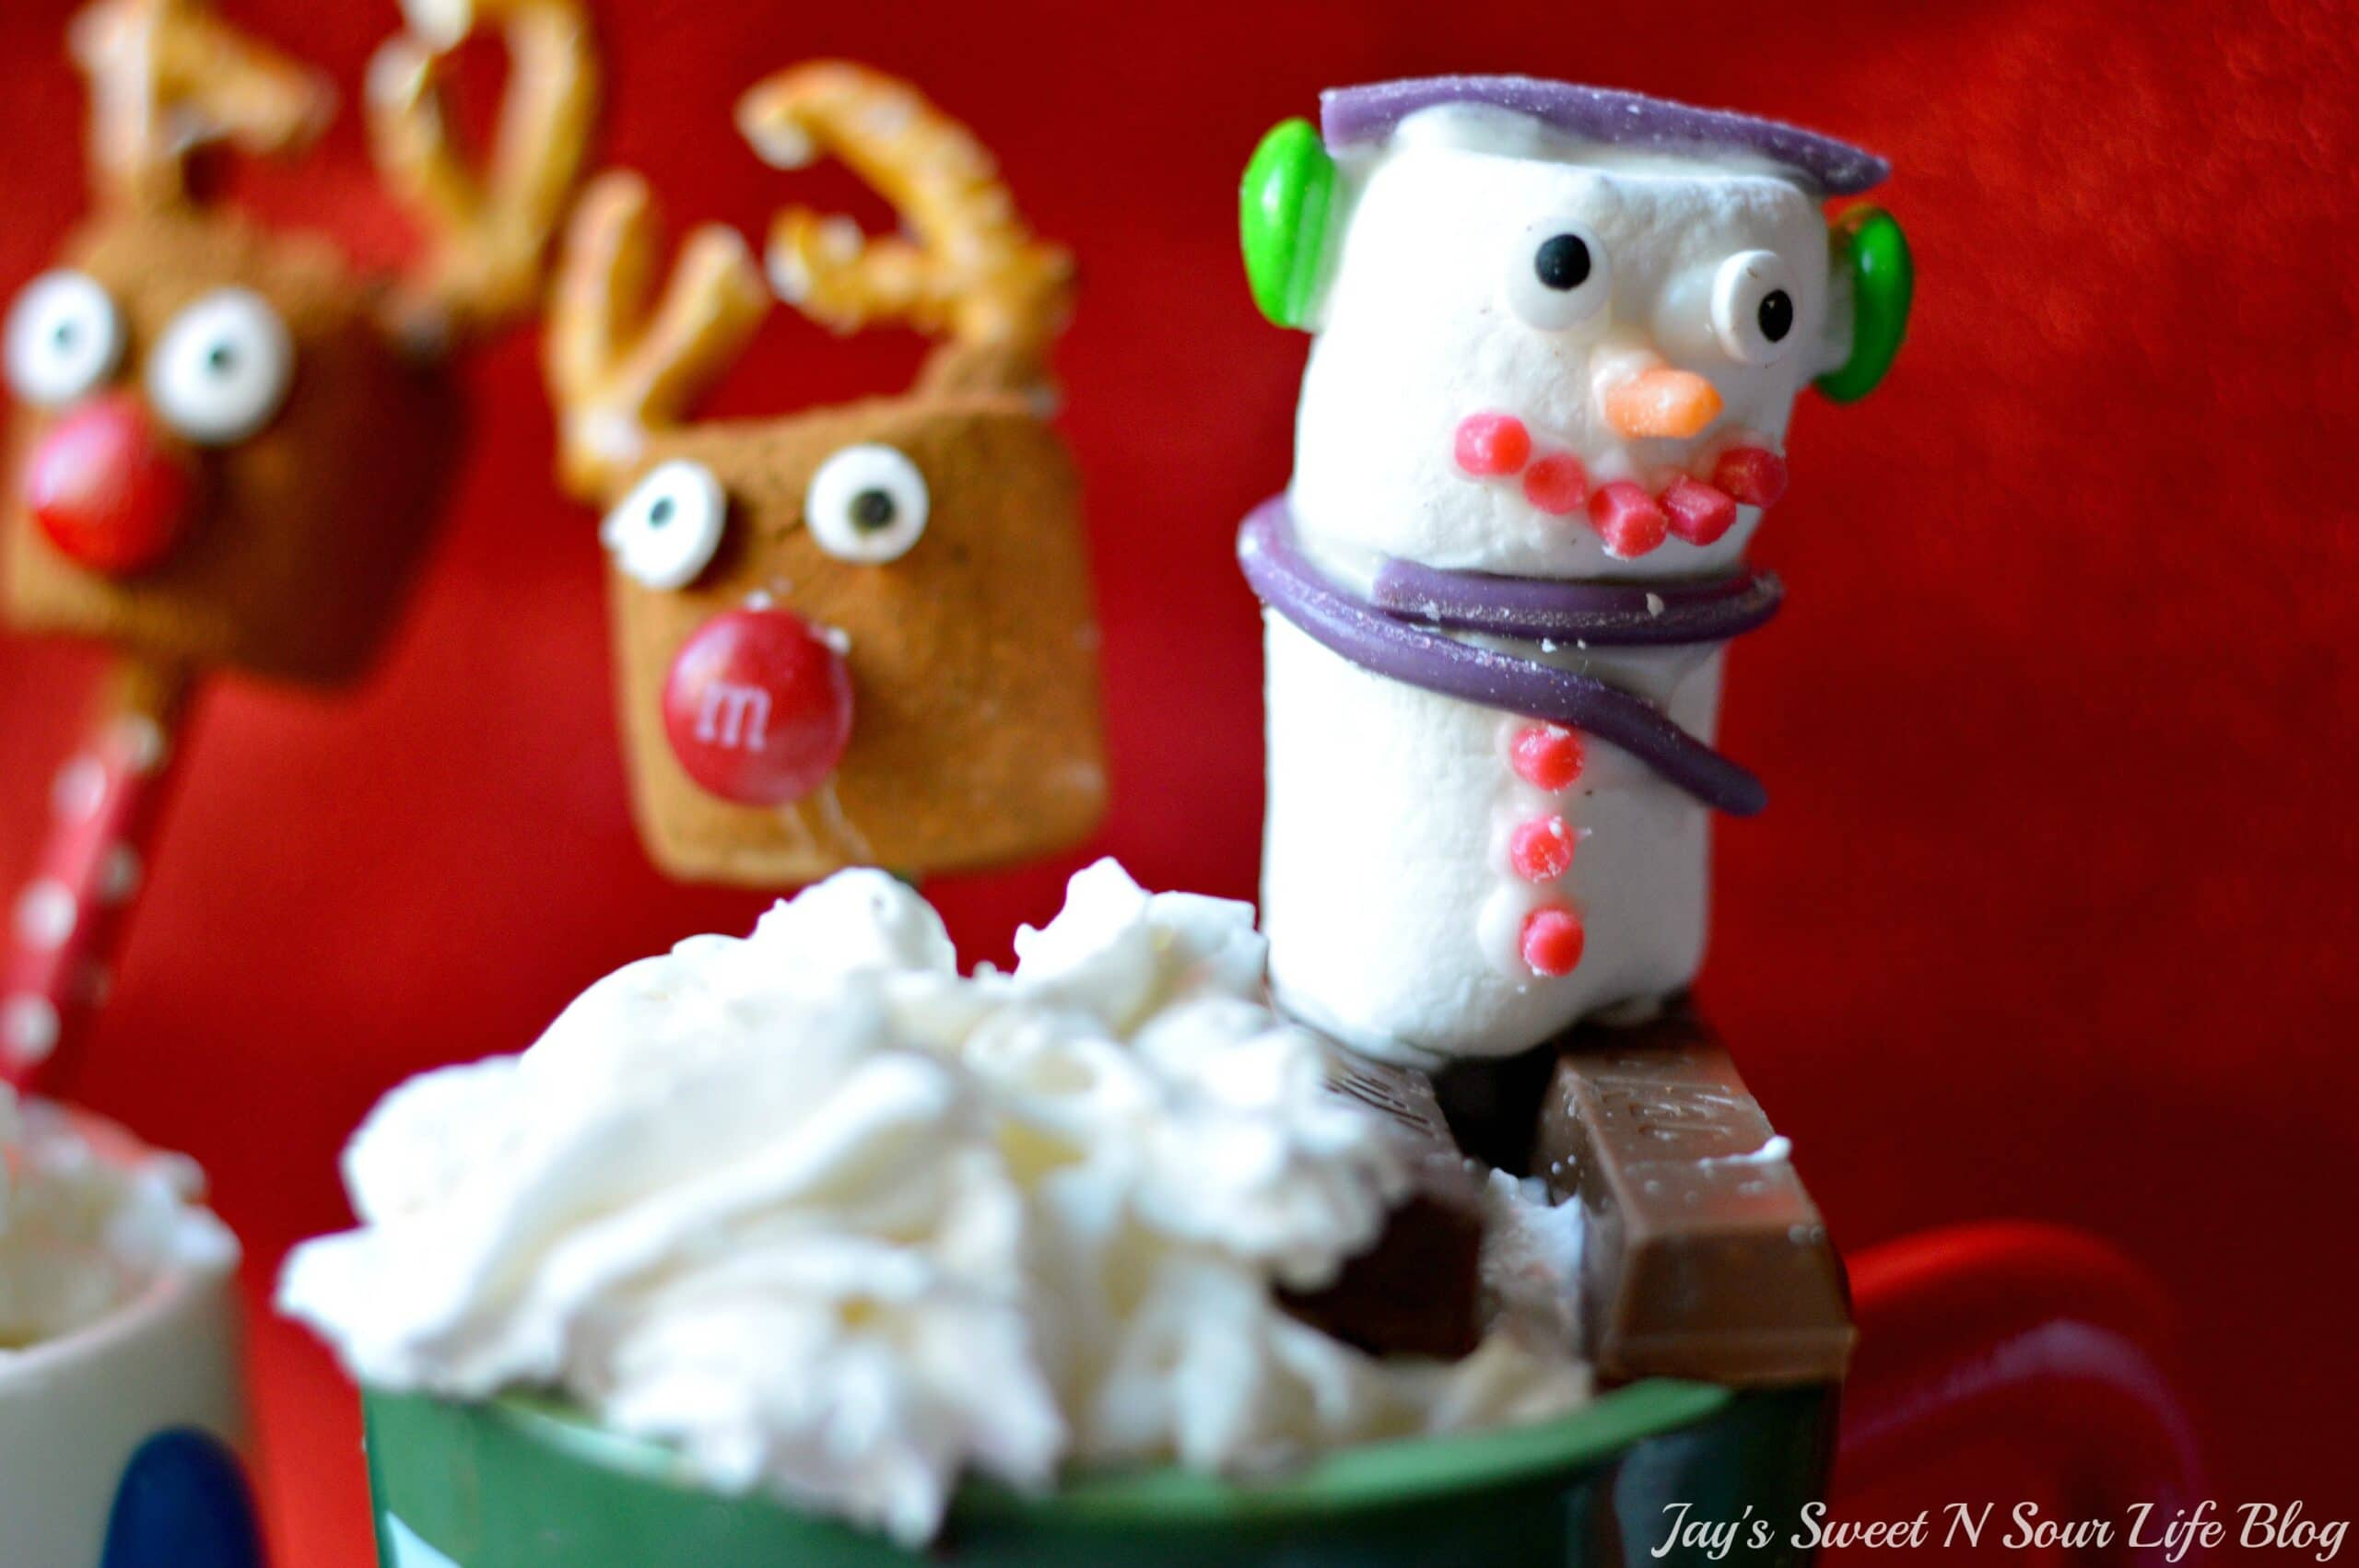 Slow Cooker Eggnog Hot Chocolate Snowman Marshmallow. This decadent Eggnog Hot Chocolate is the perfect holiday drink for Christmas Parties. Made in the slow cooker, this eggnog infused hot chocolate is smooth, creamy, chocolatey, and easy to make.